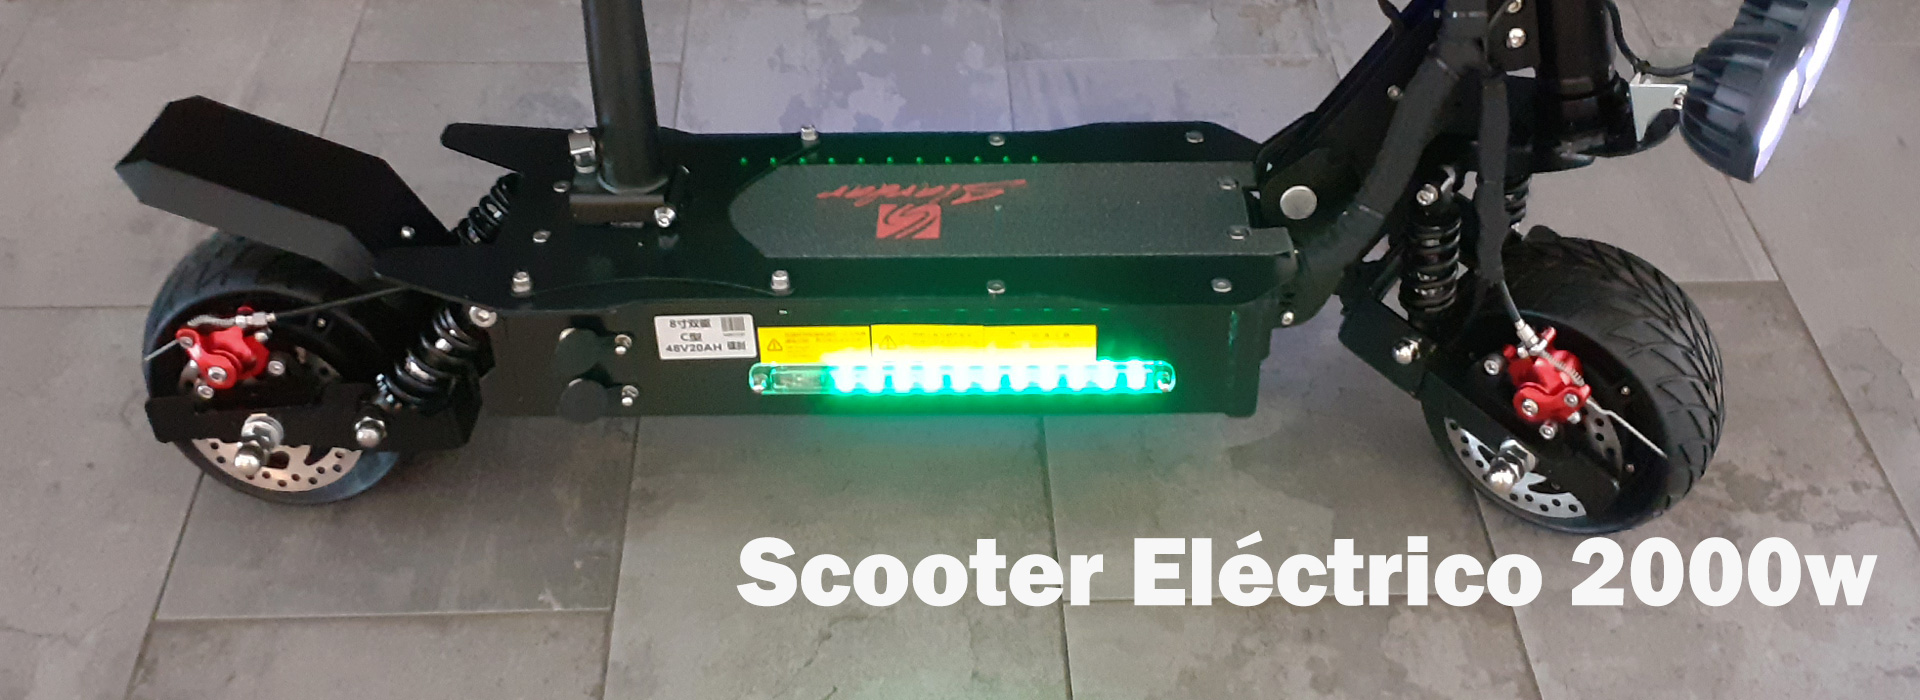 SCOOTERS ELÉCTRICOS 2000w